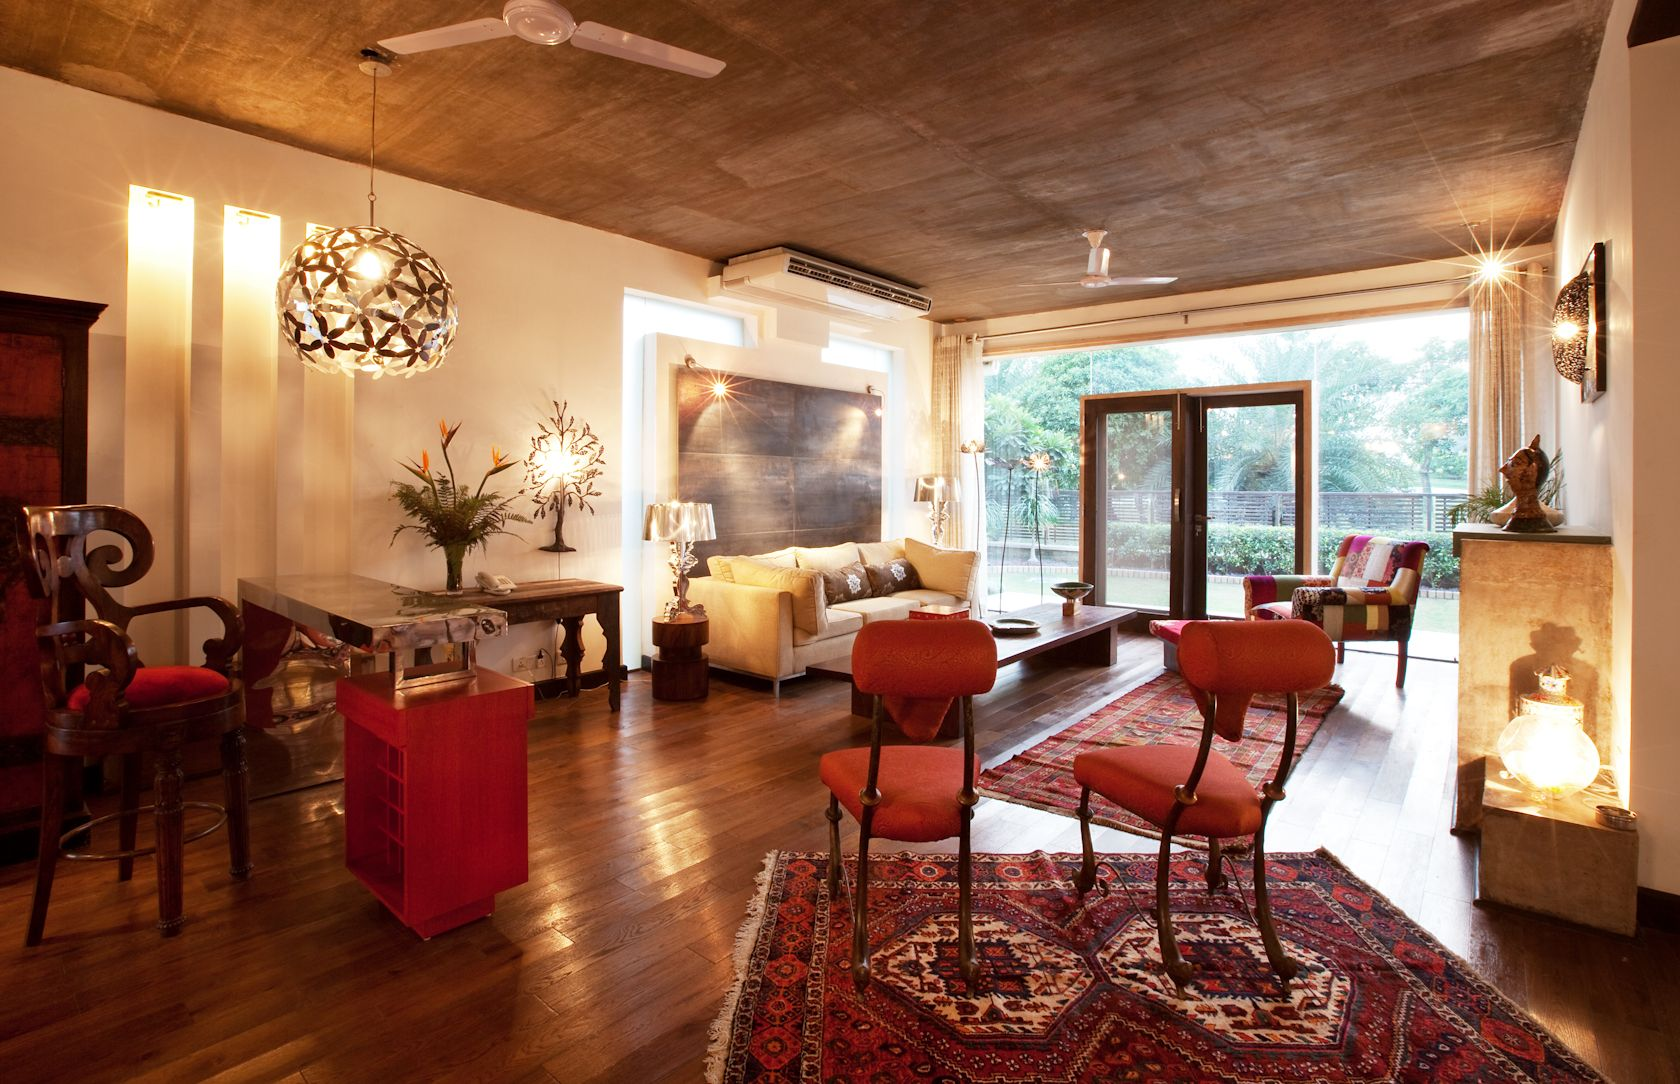 All living rooms traditional homes interior design by narayan